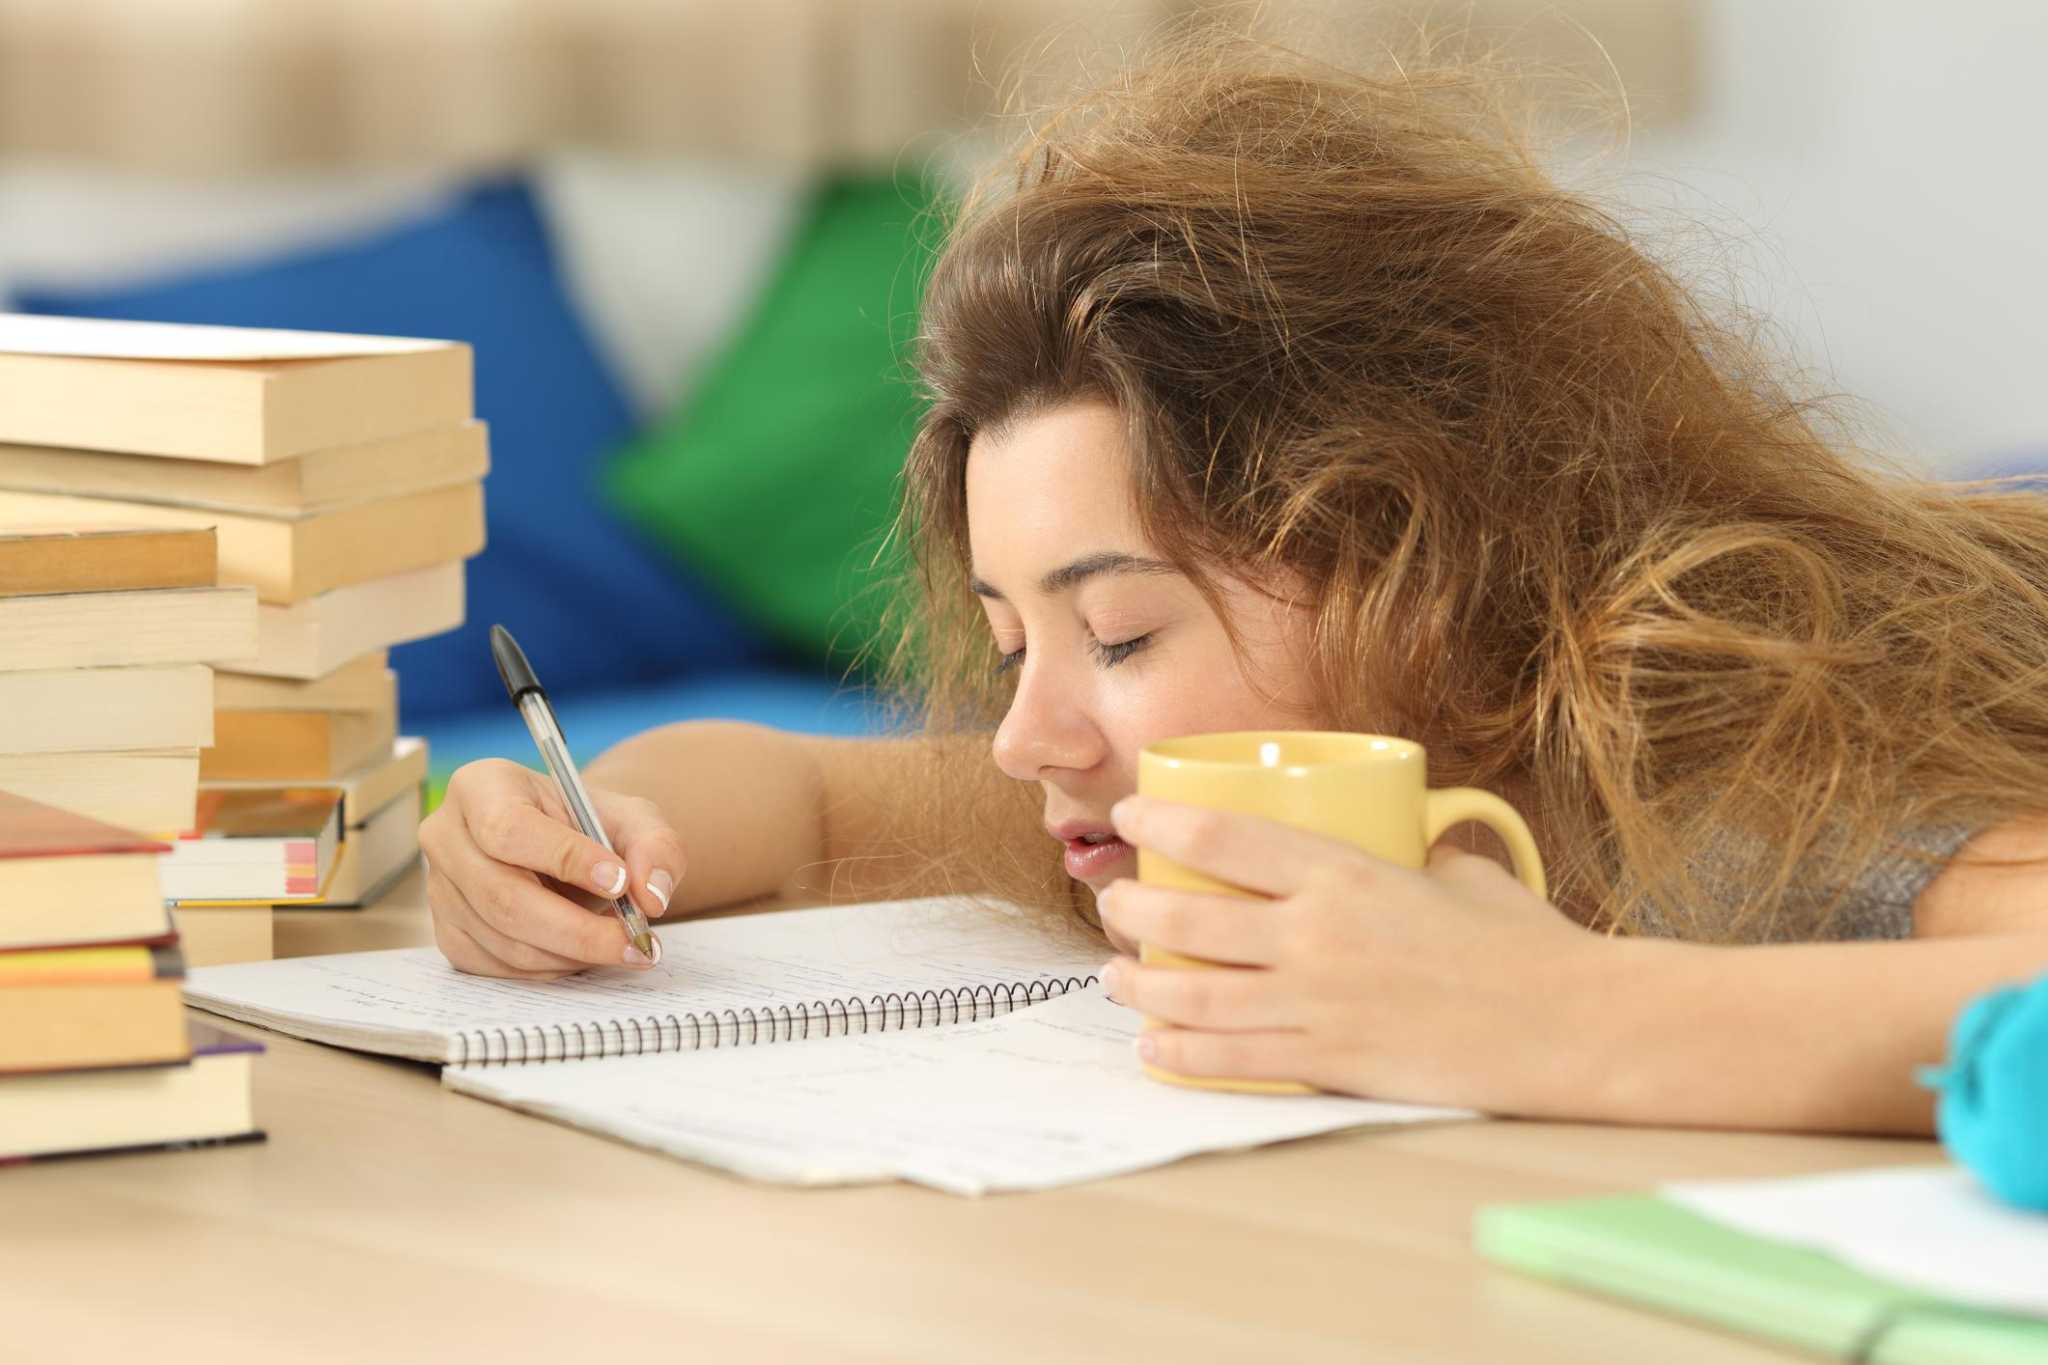 Lack of sleep among adolescents could pave the way for future health problems